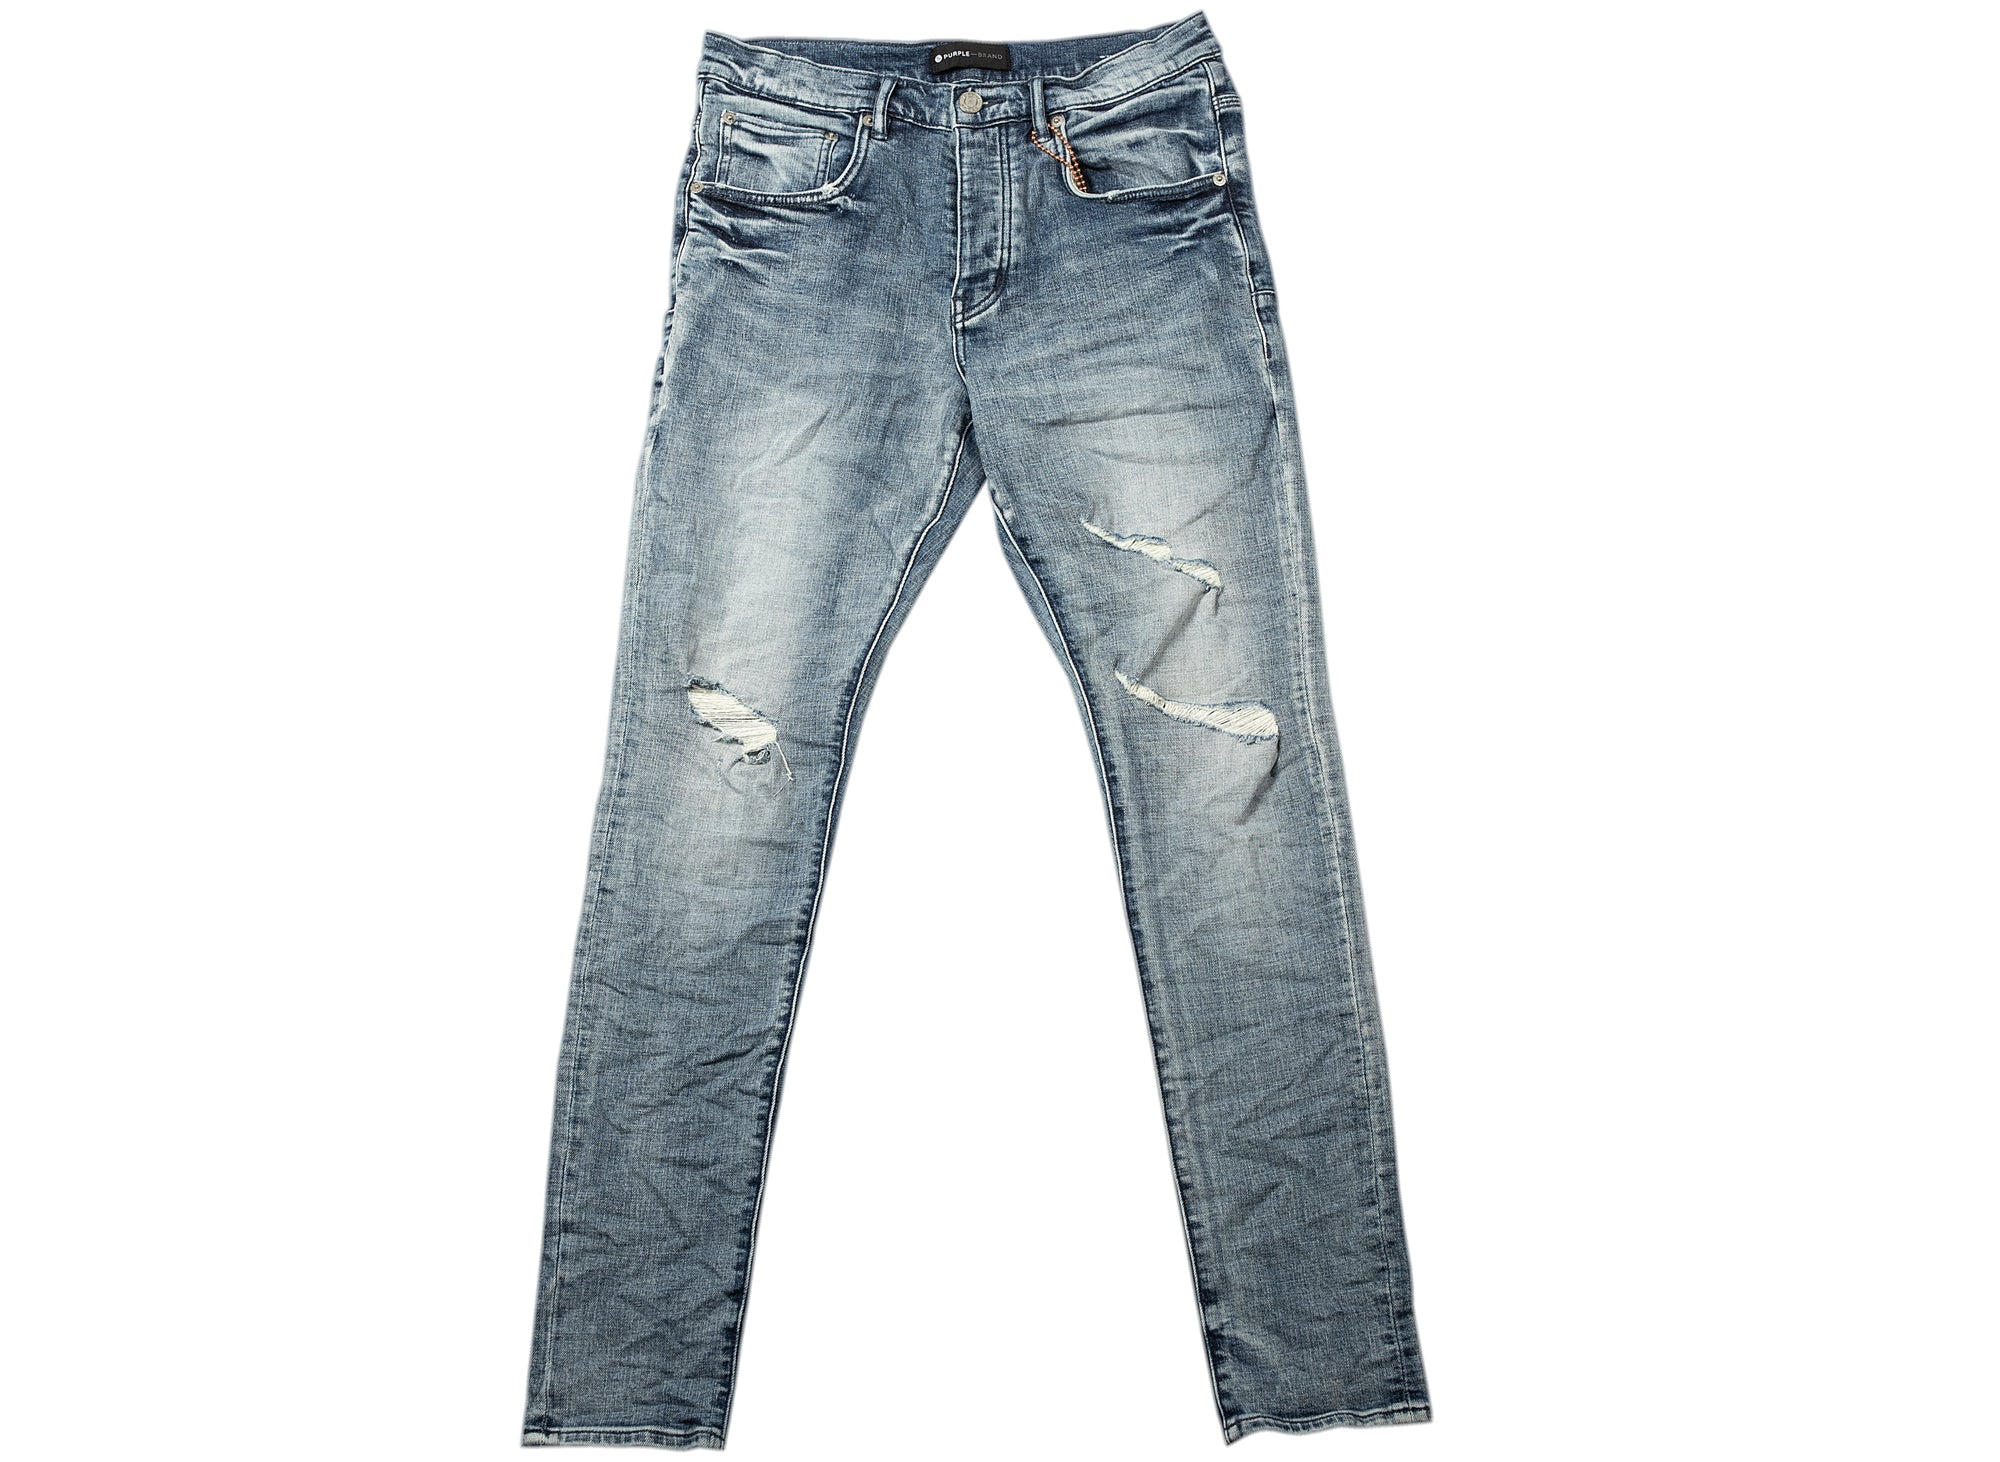 Purple Brand Faded Blue Distressed Jeans